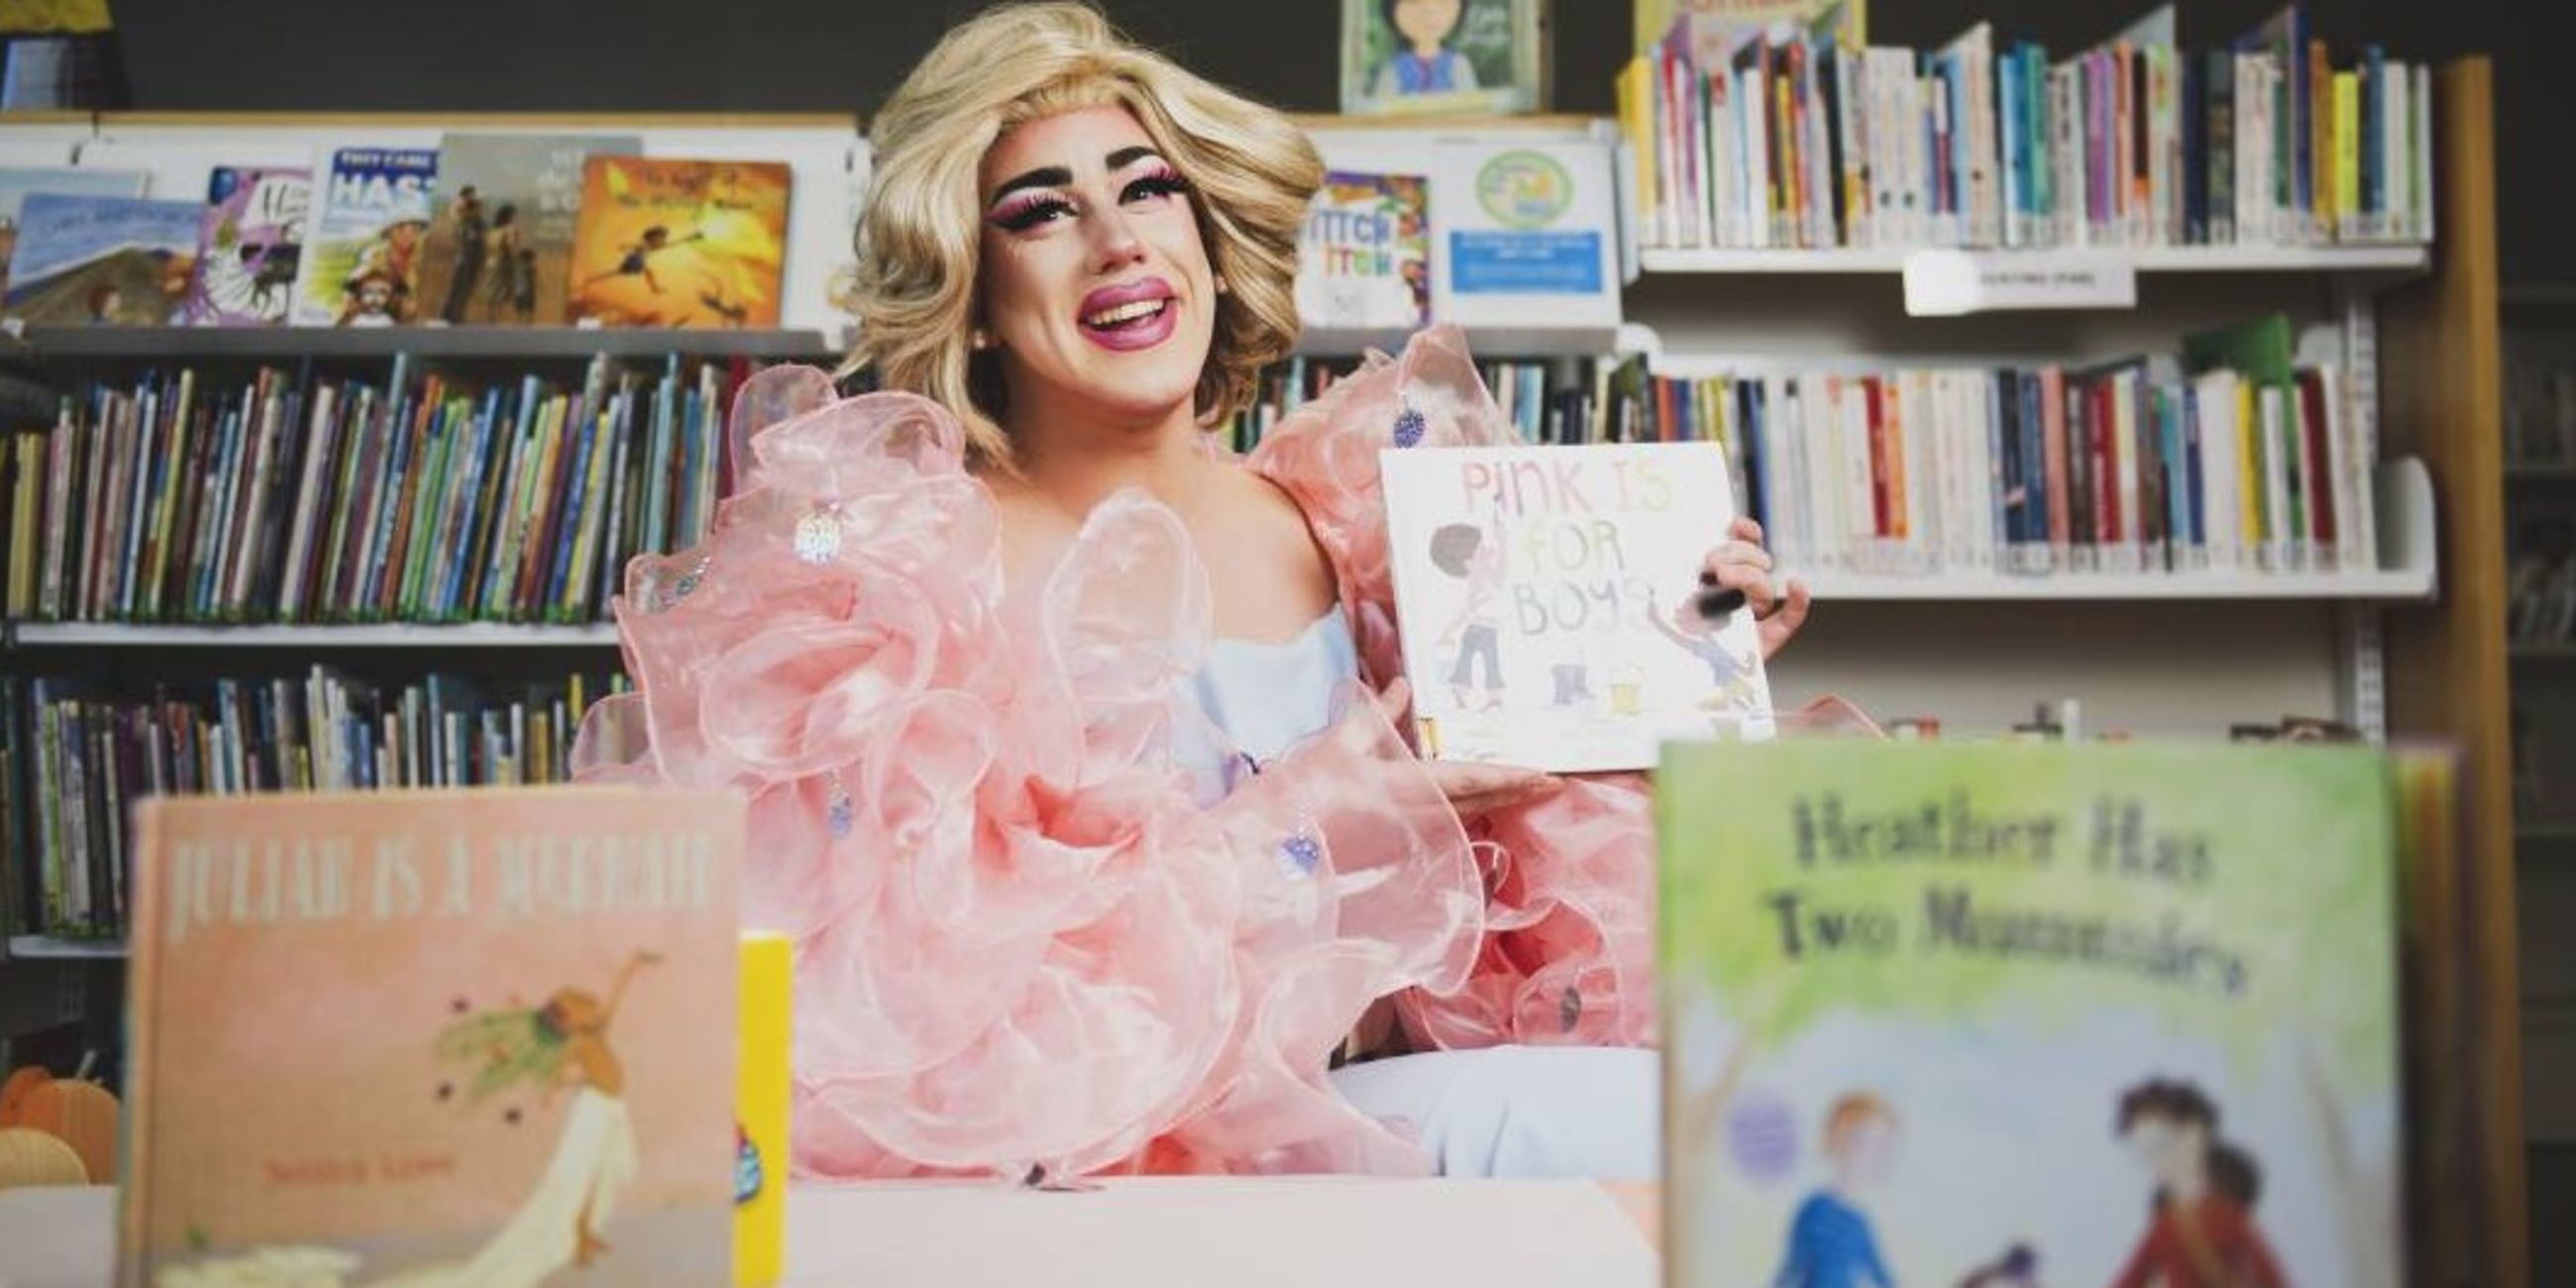 Support Performers with a Drag Queen Storytelling Livestream